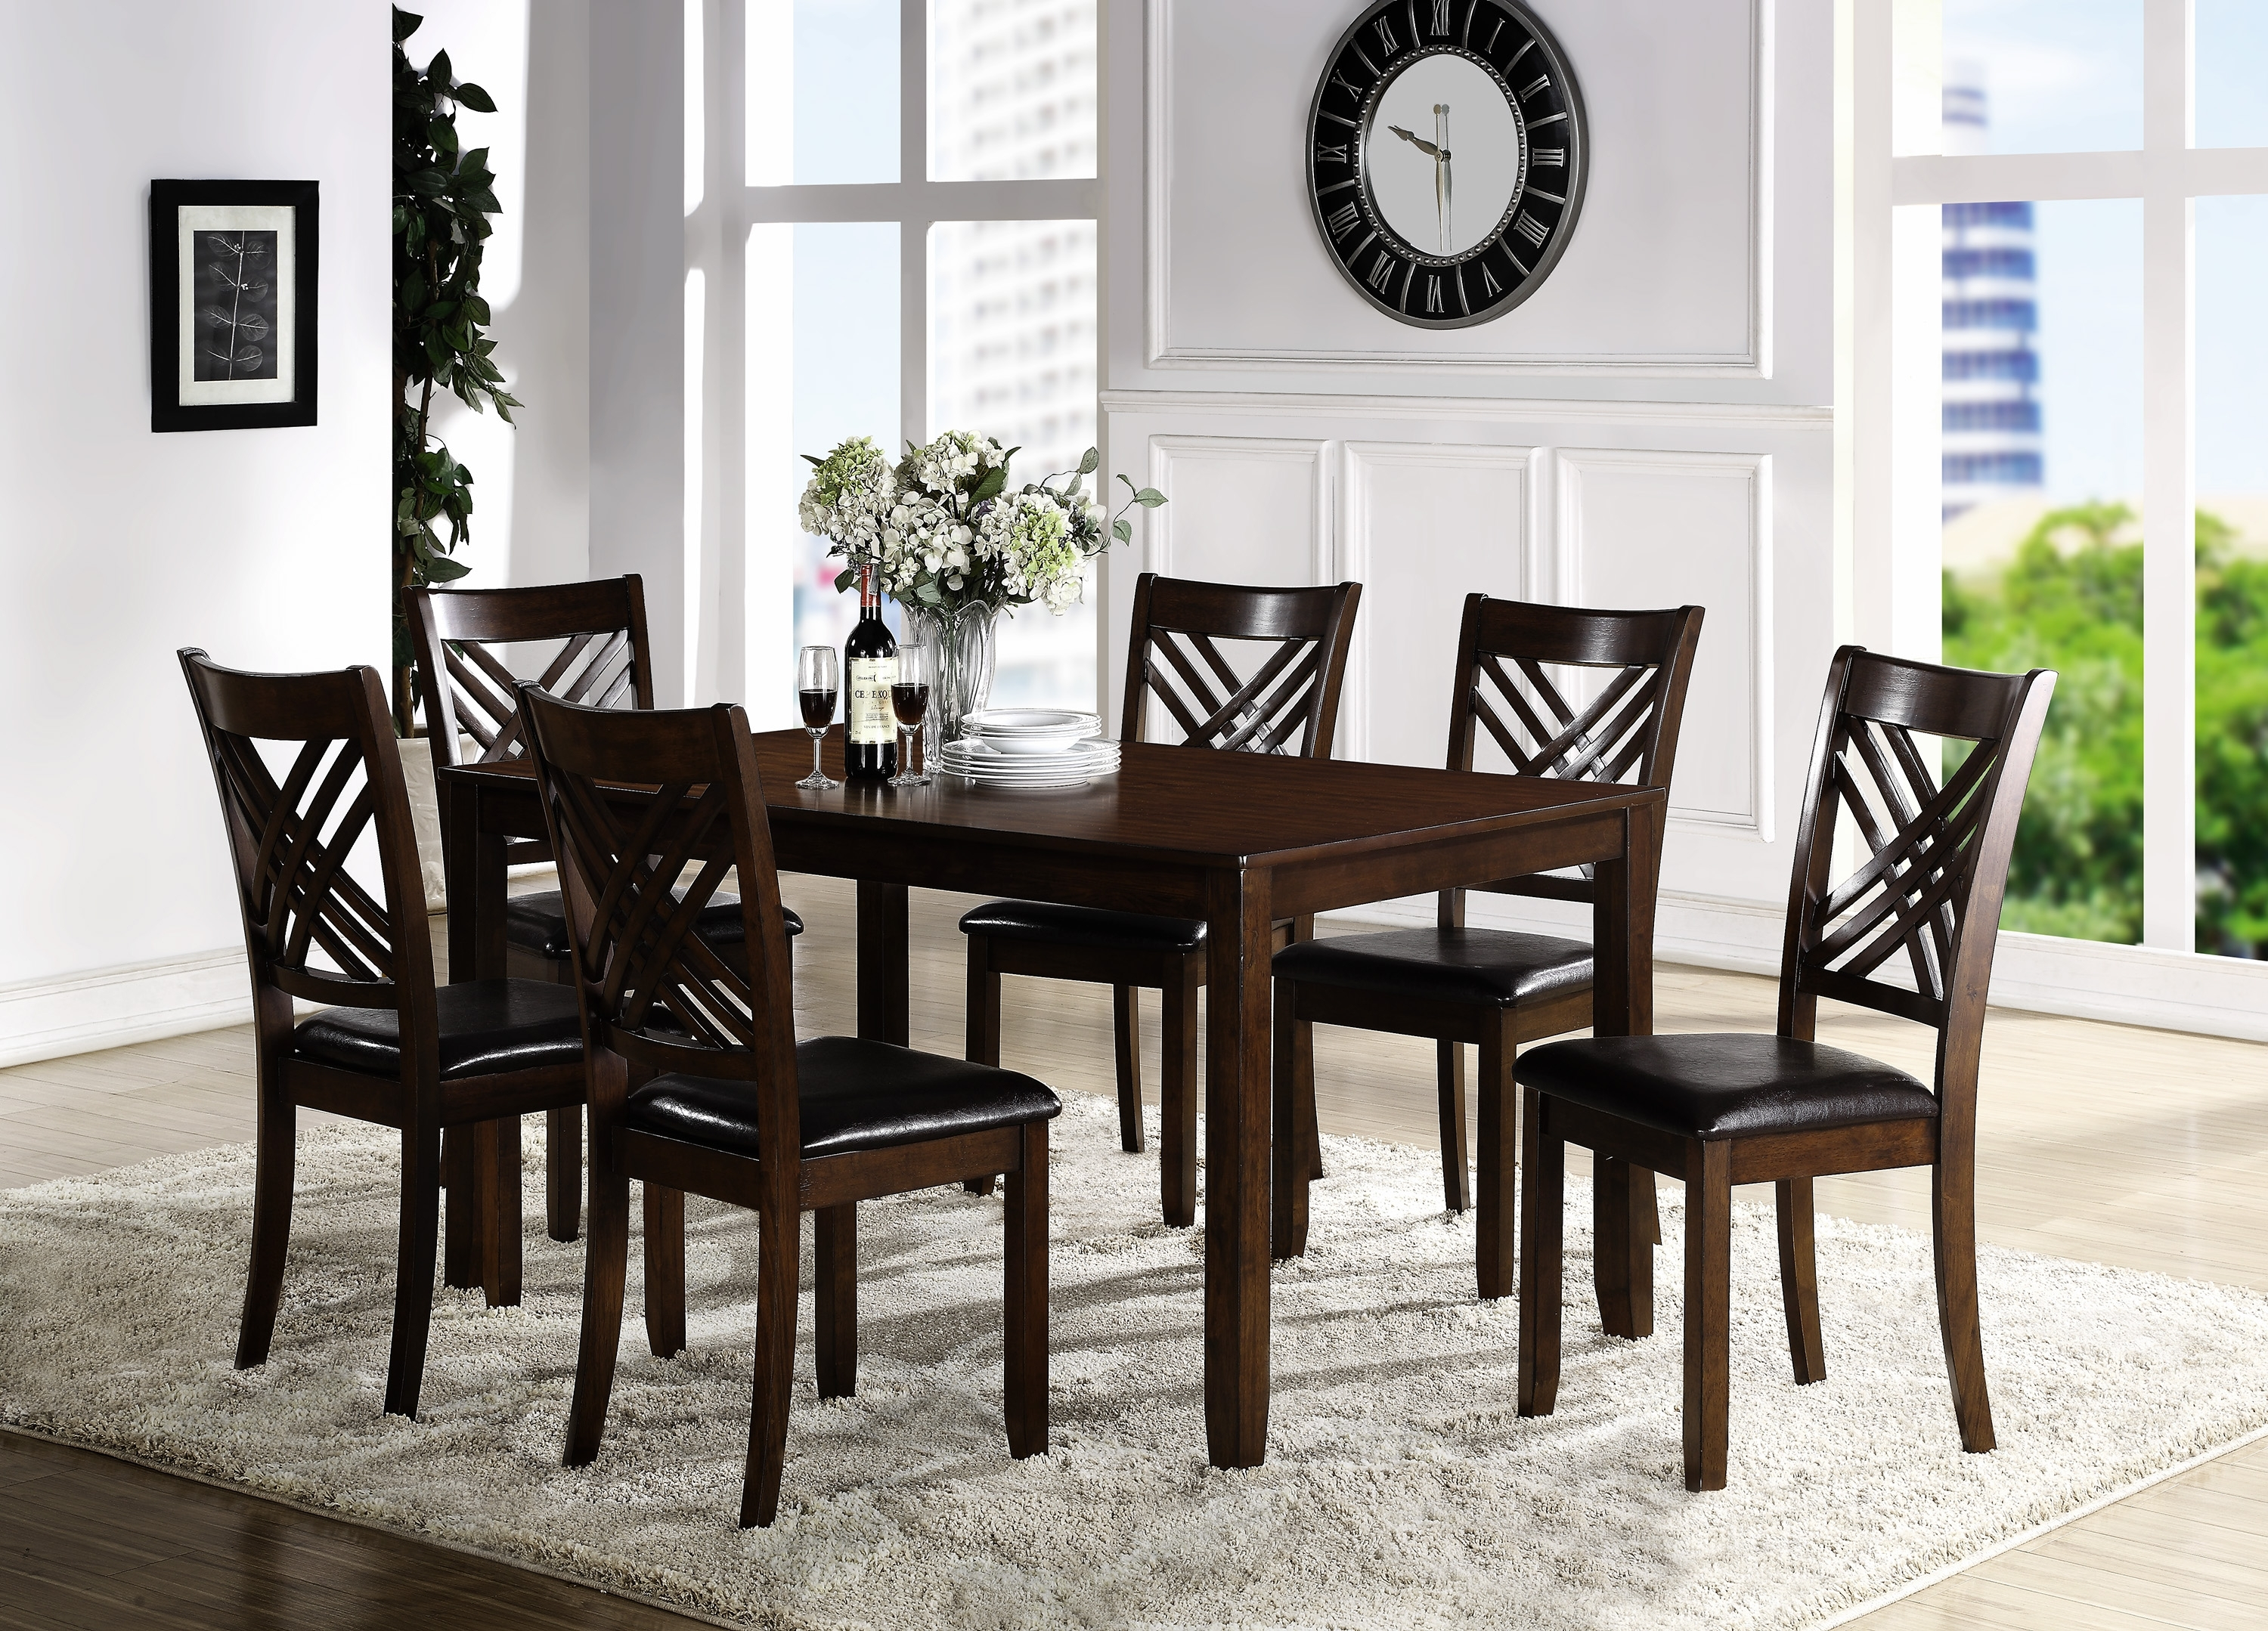 Lindy Espresso Rectangle Dining Tables Inside Most Recently Released Crown Mark Eloise Dining Room Table With Six Crossback Side Chairs (View 11 of 25)